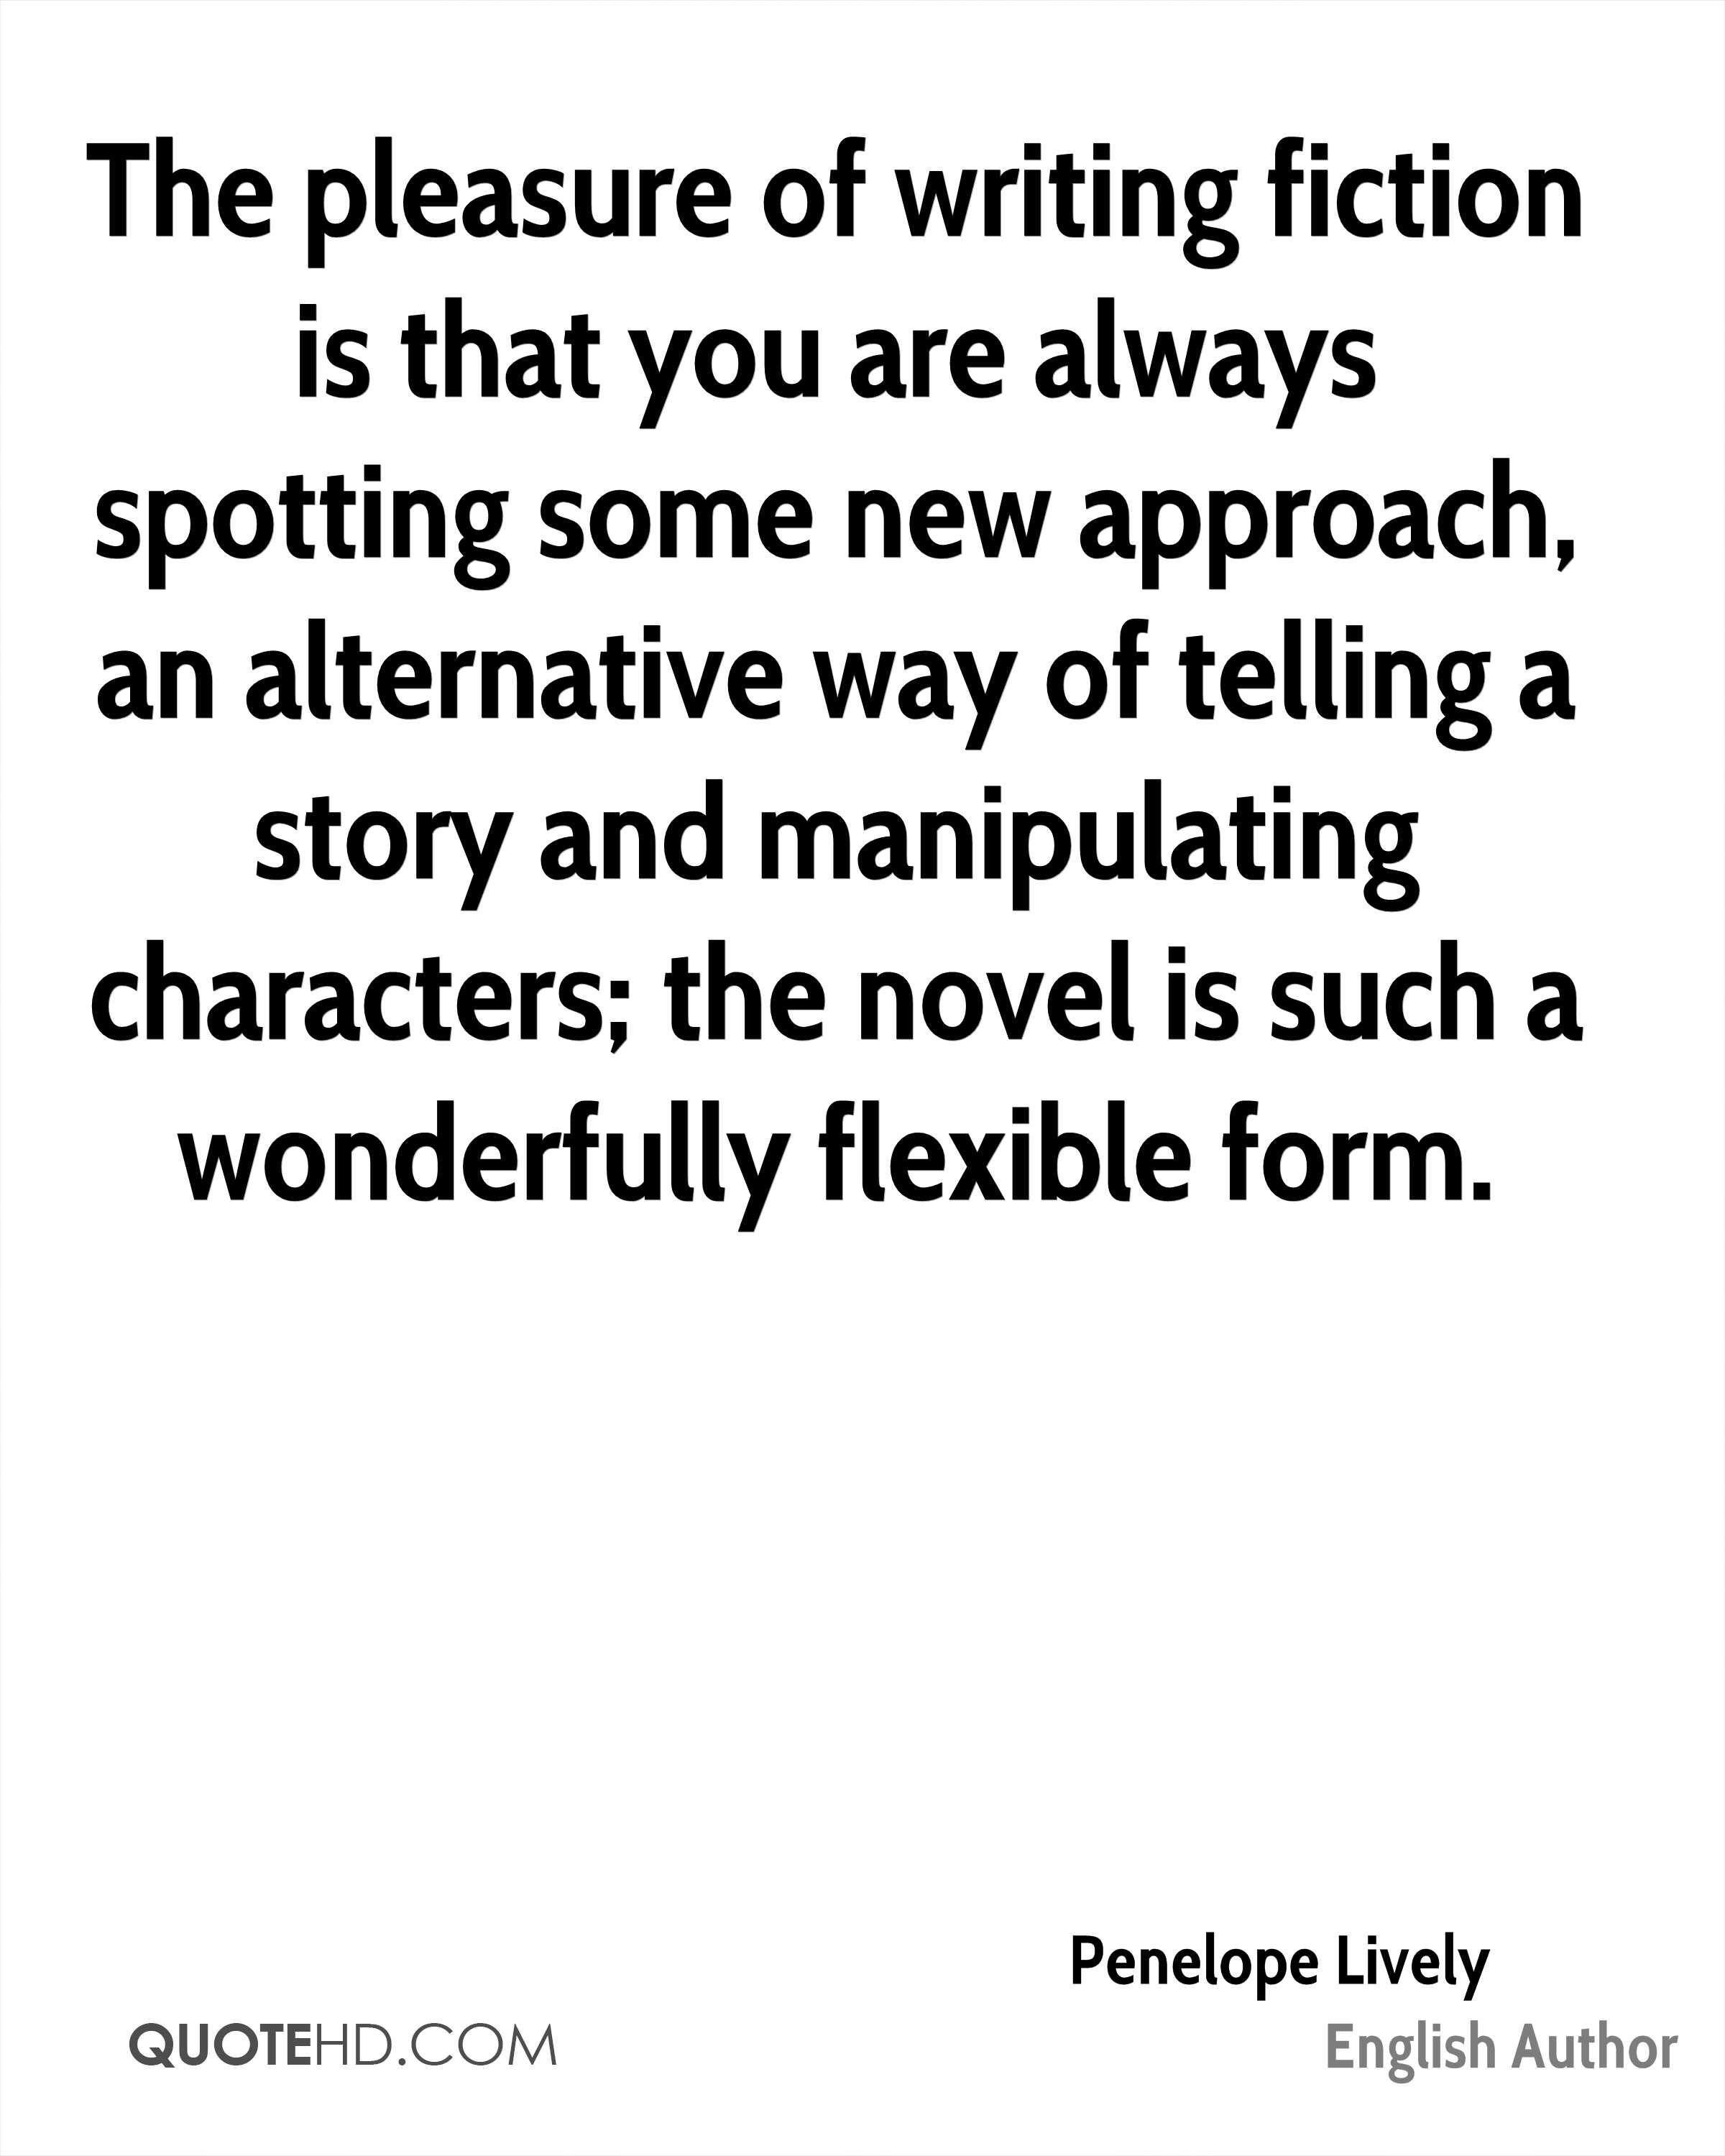 The pleasure of writing fiction is that you are always spotting some new approach, an alternative way of telling a story and manipulating characters; the novel is such a wonderfully flexible form.